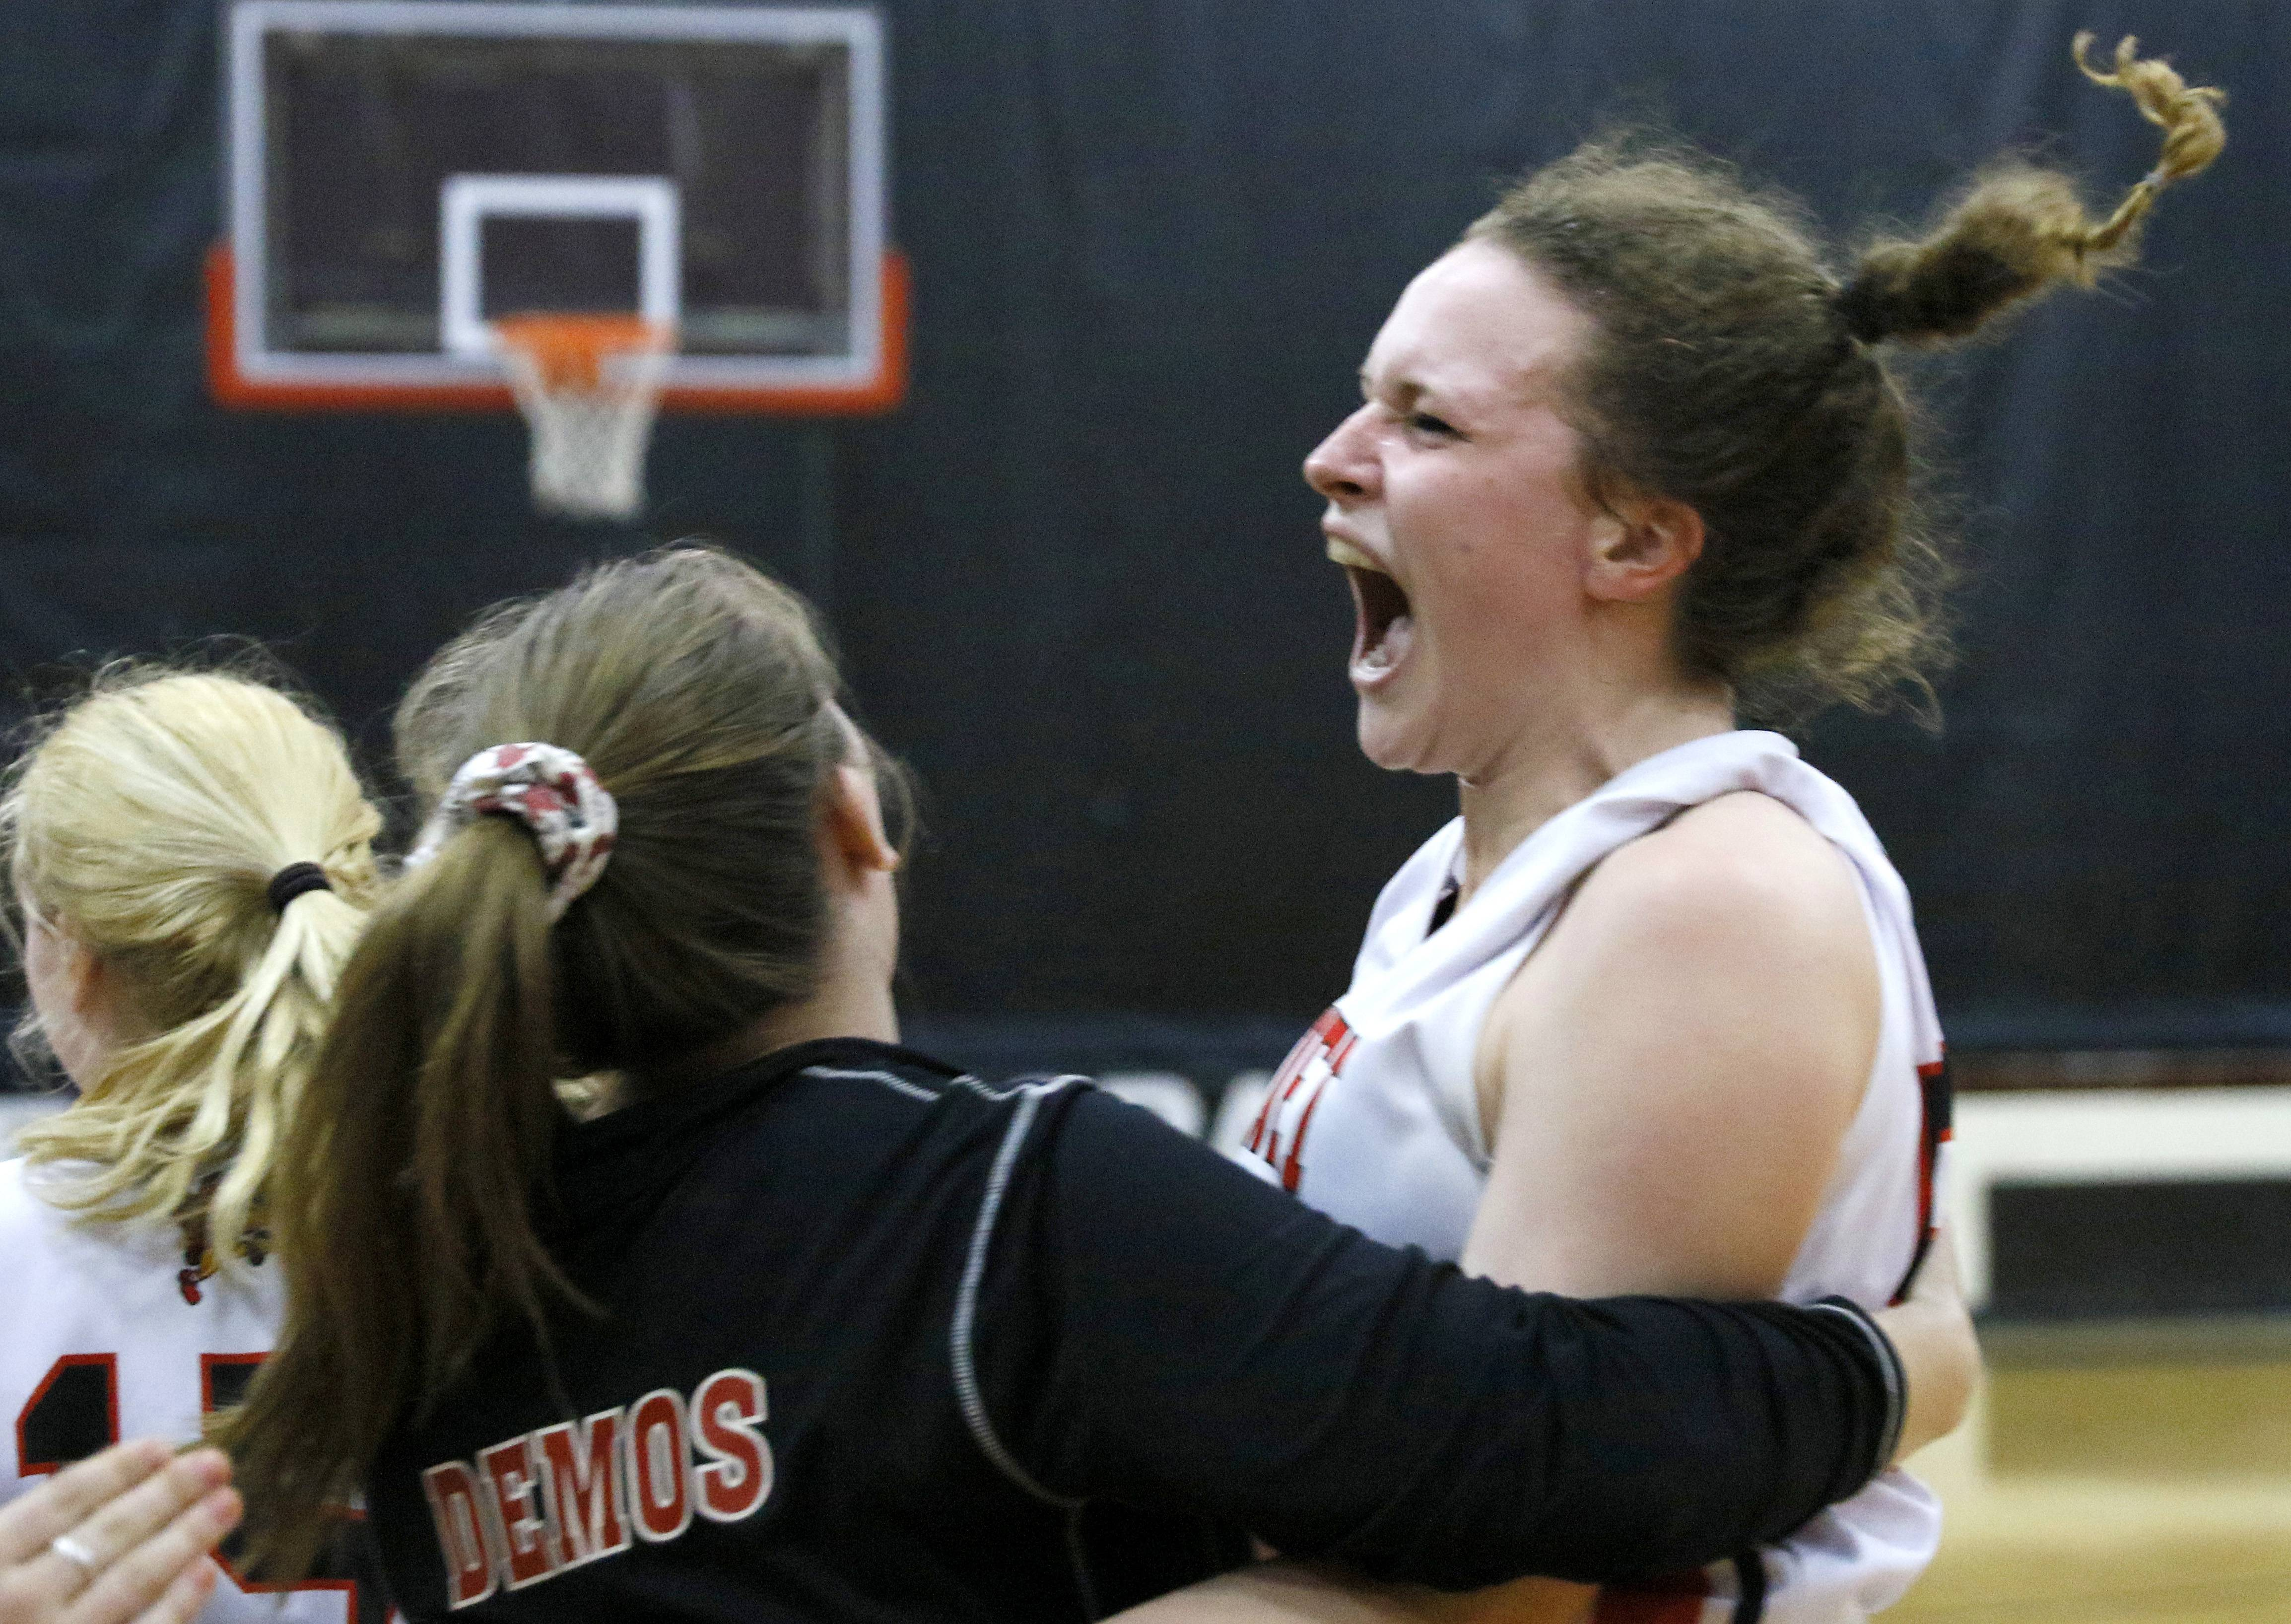 Benet Academy girls basketball players led by Katie Jaseckas, right, celebrate a 59-48 win over Plainfield East to capture the East Aurora sectional championship.